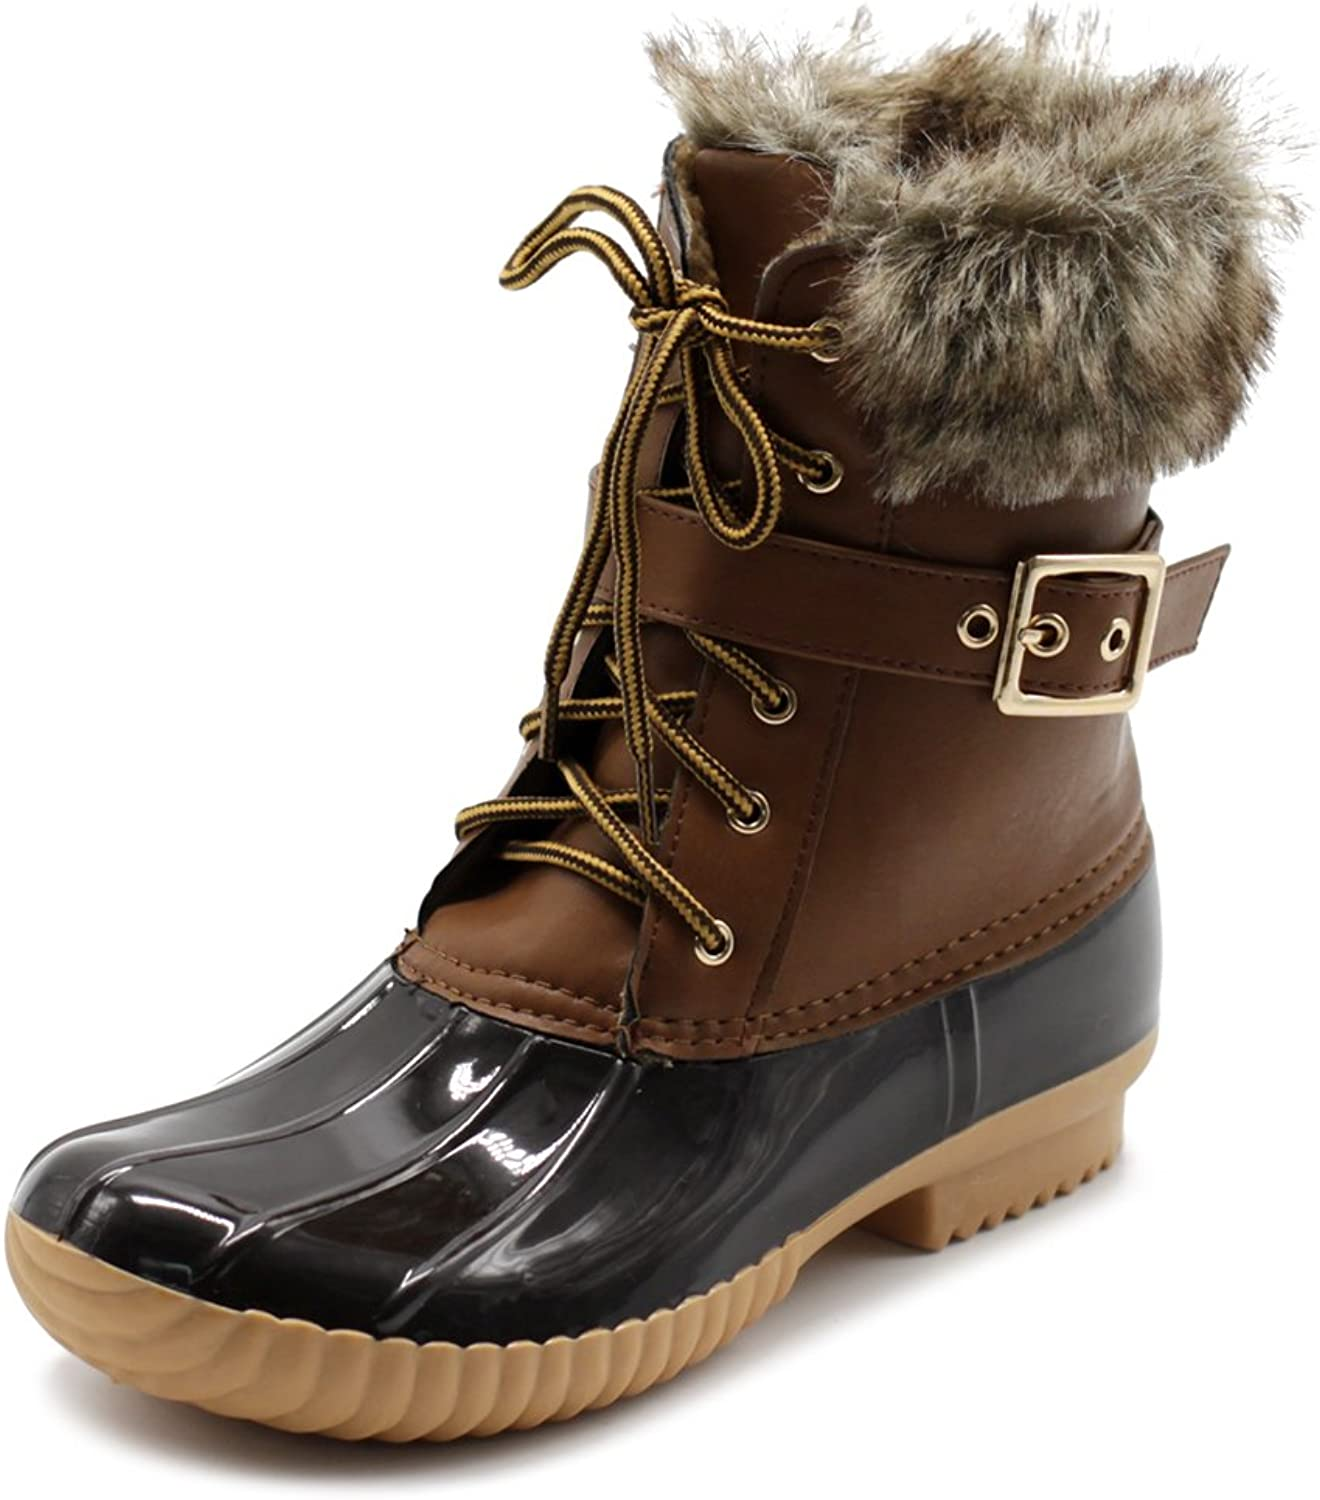 Ollio Women shoes Lace Up Faux Fur Buckled Duck Boots